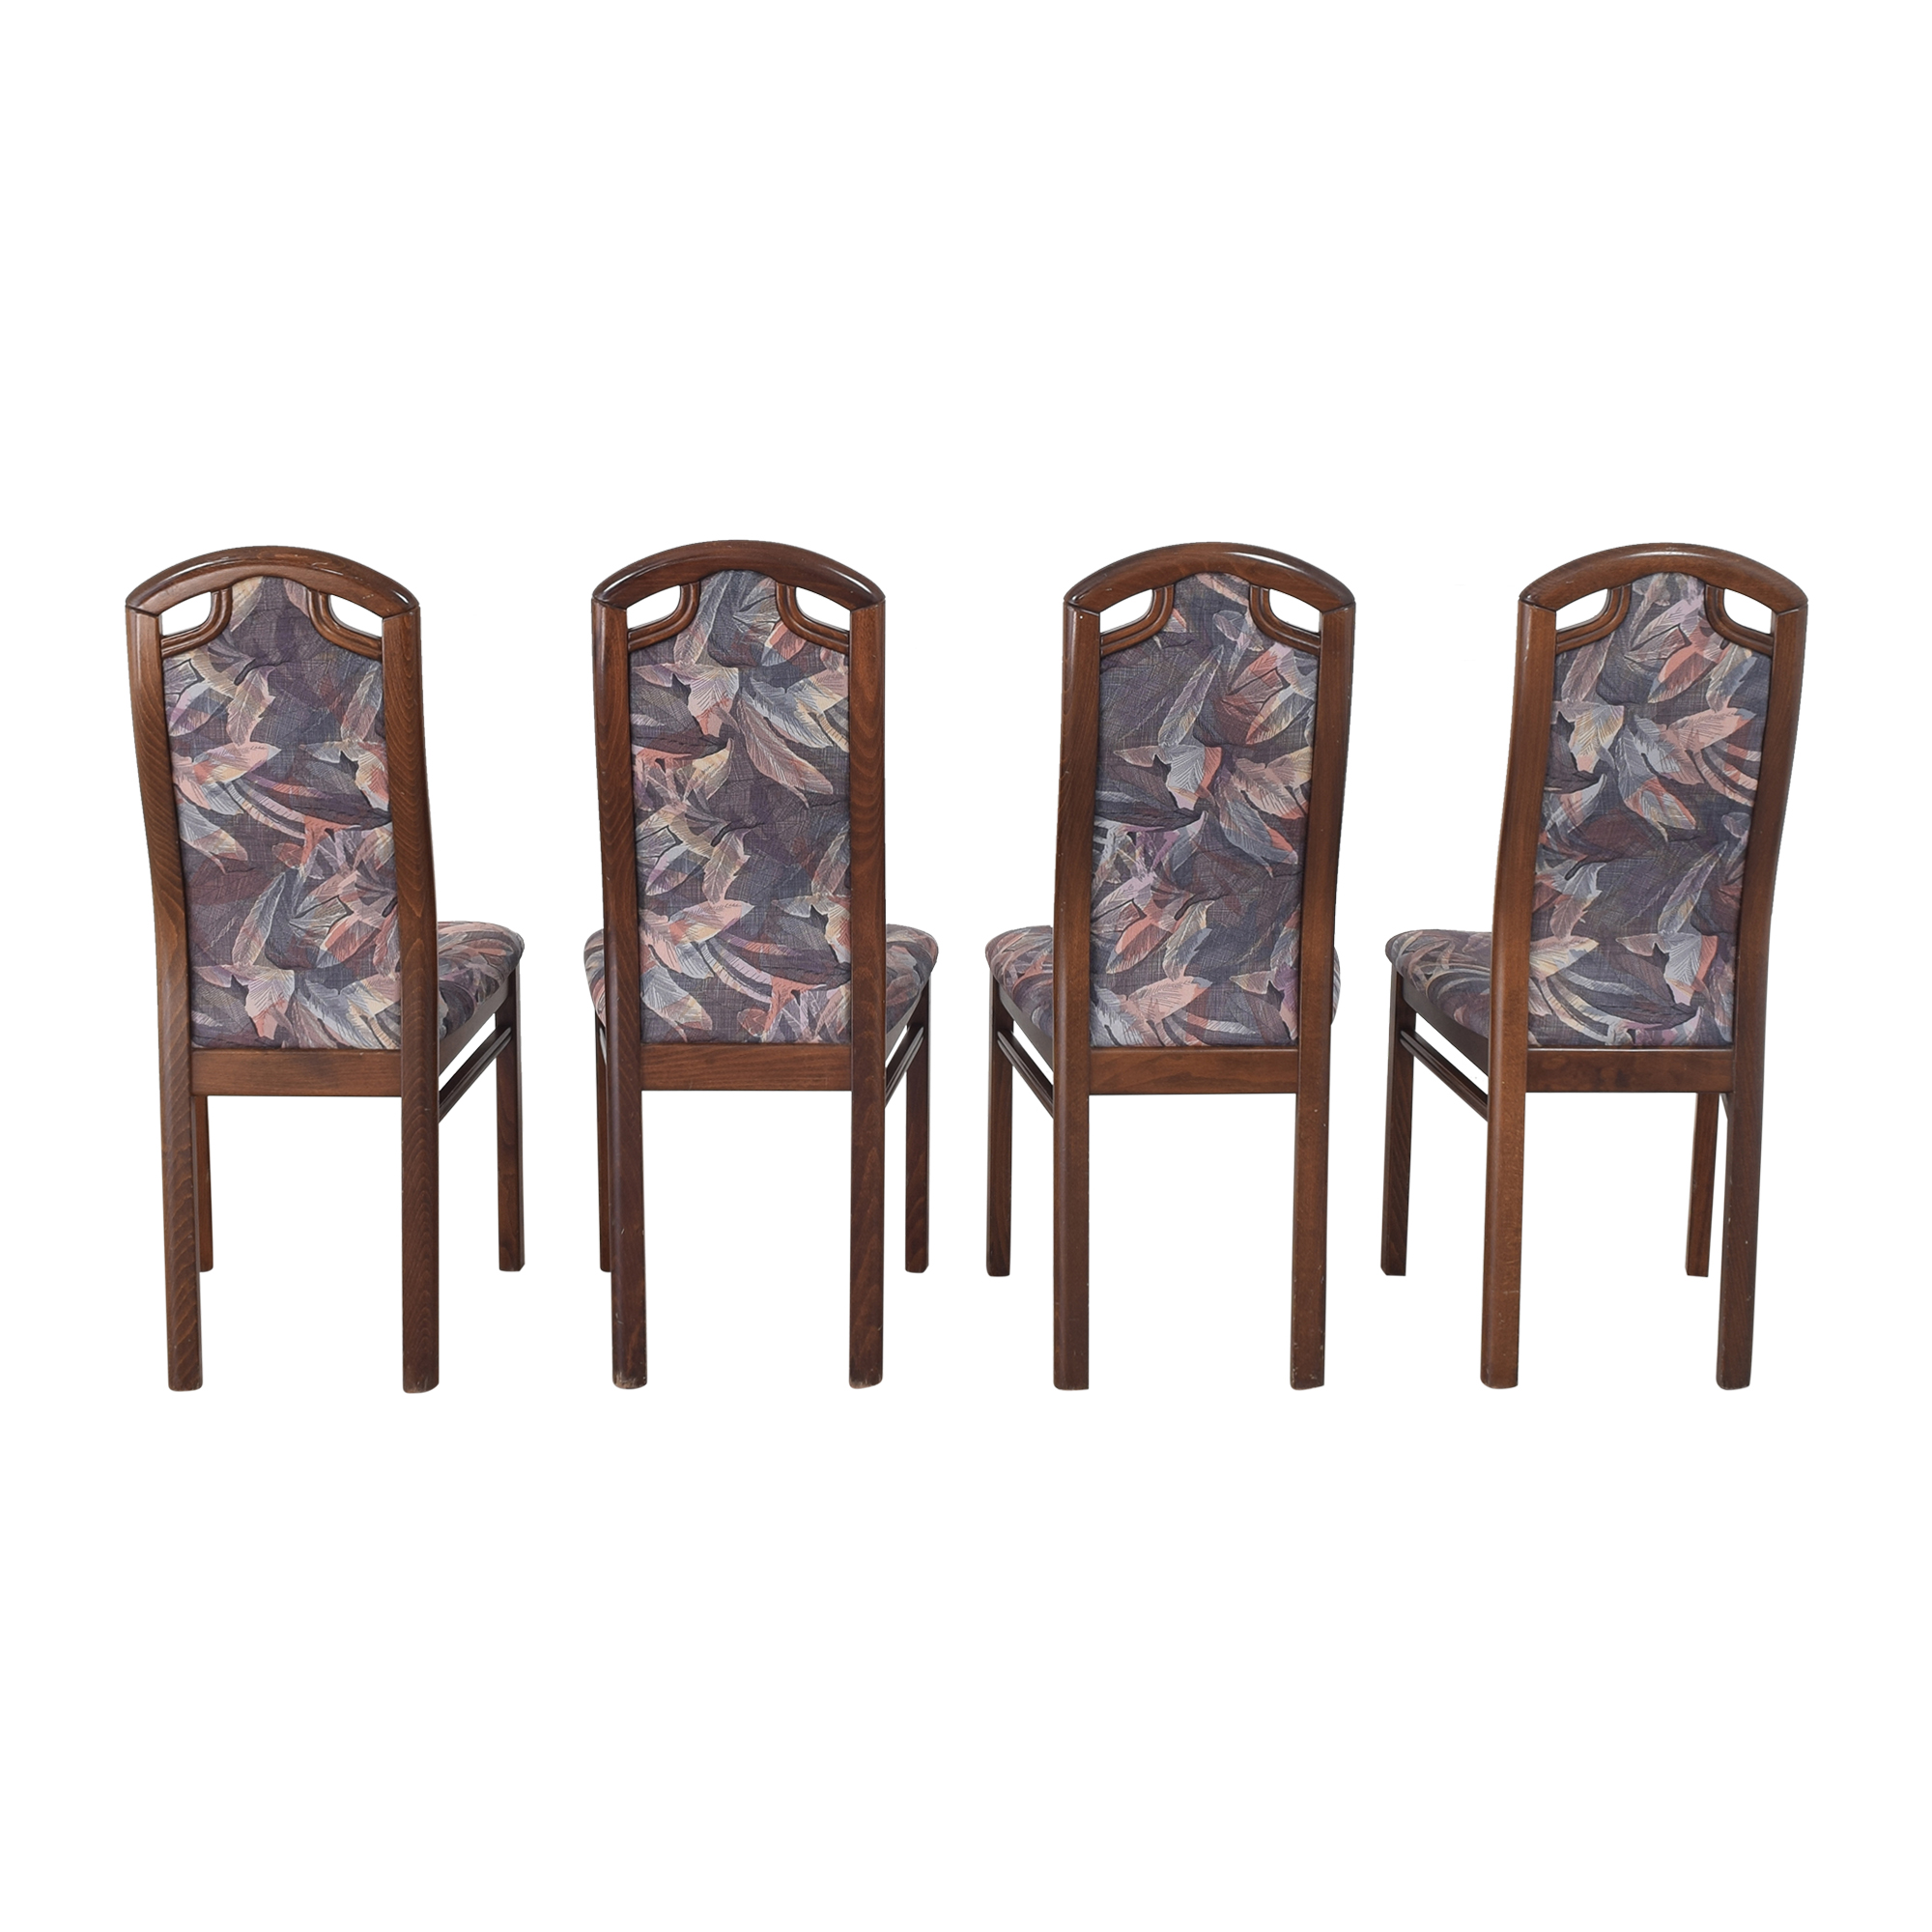 Benze Collection Benze Collection High Back Dining Chairs multi